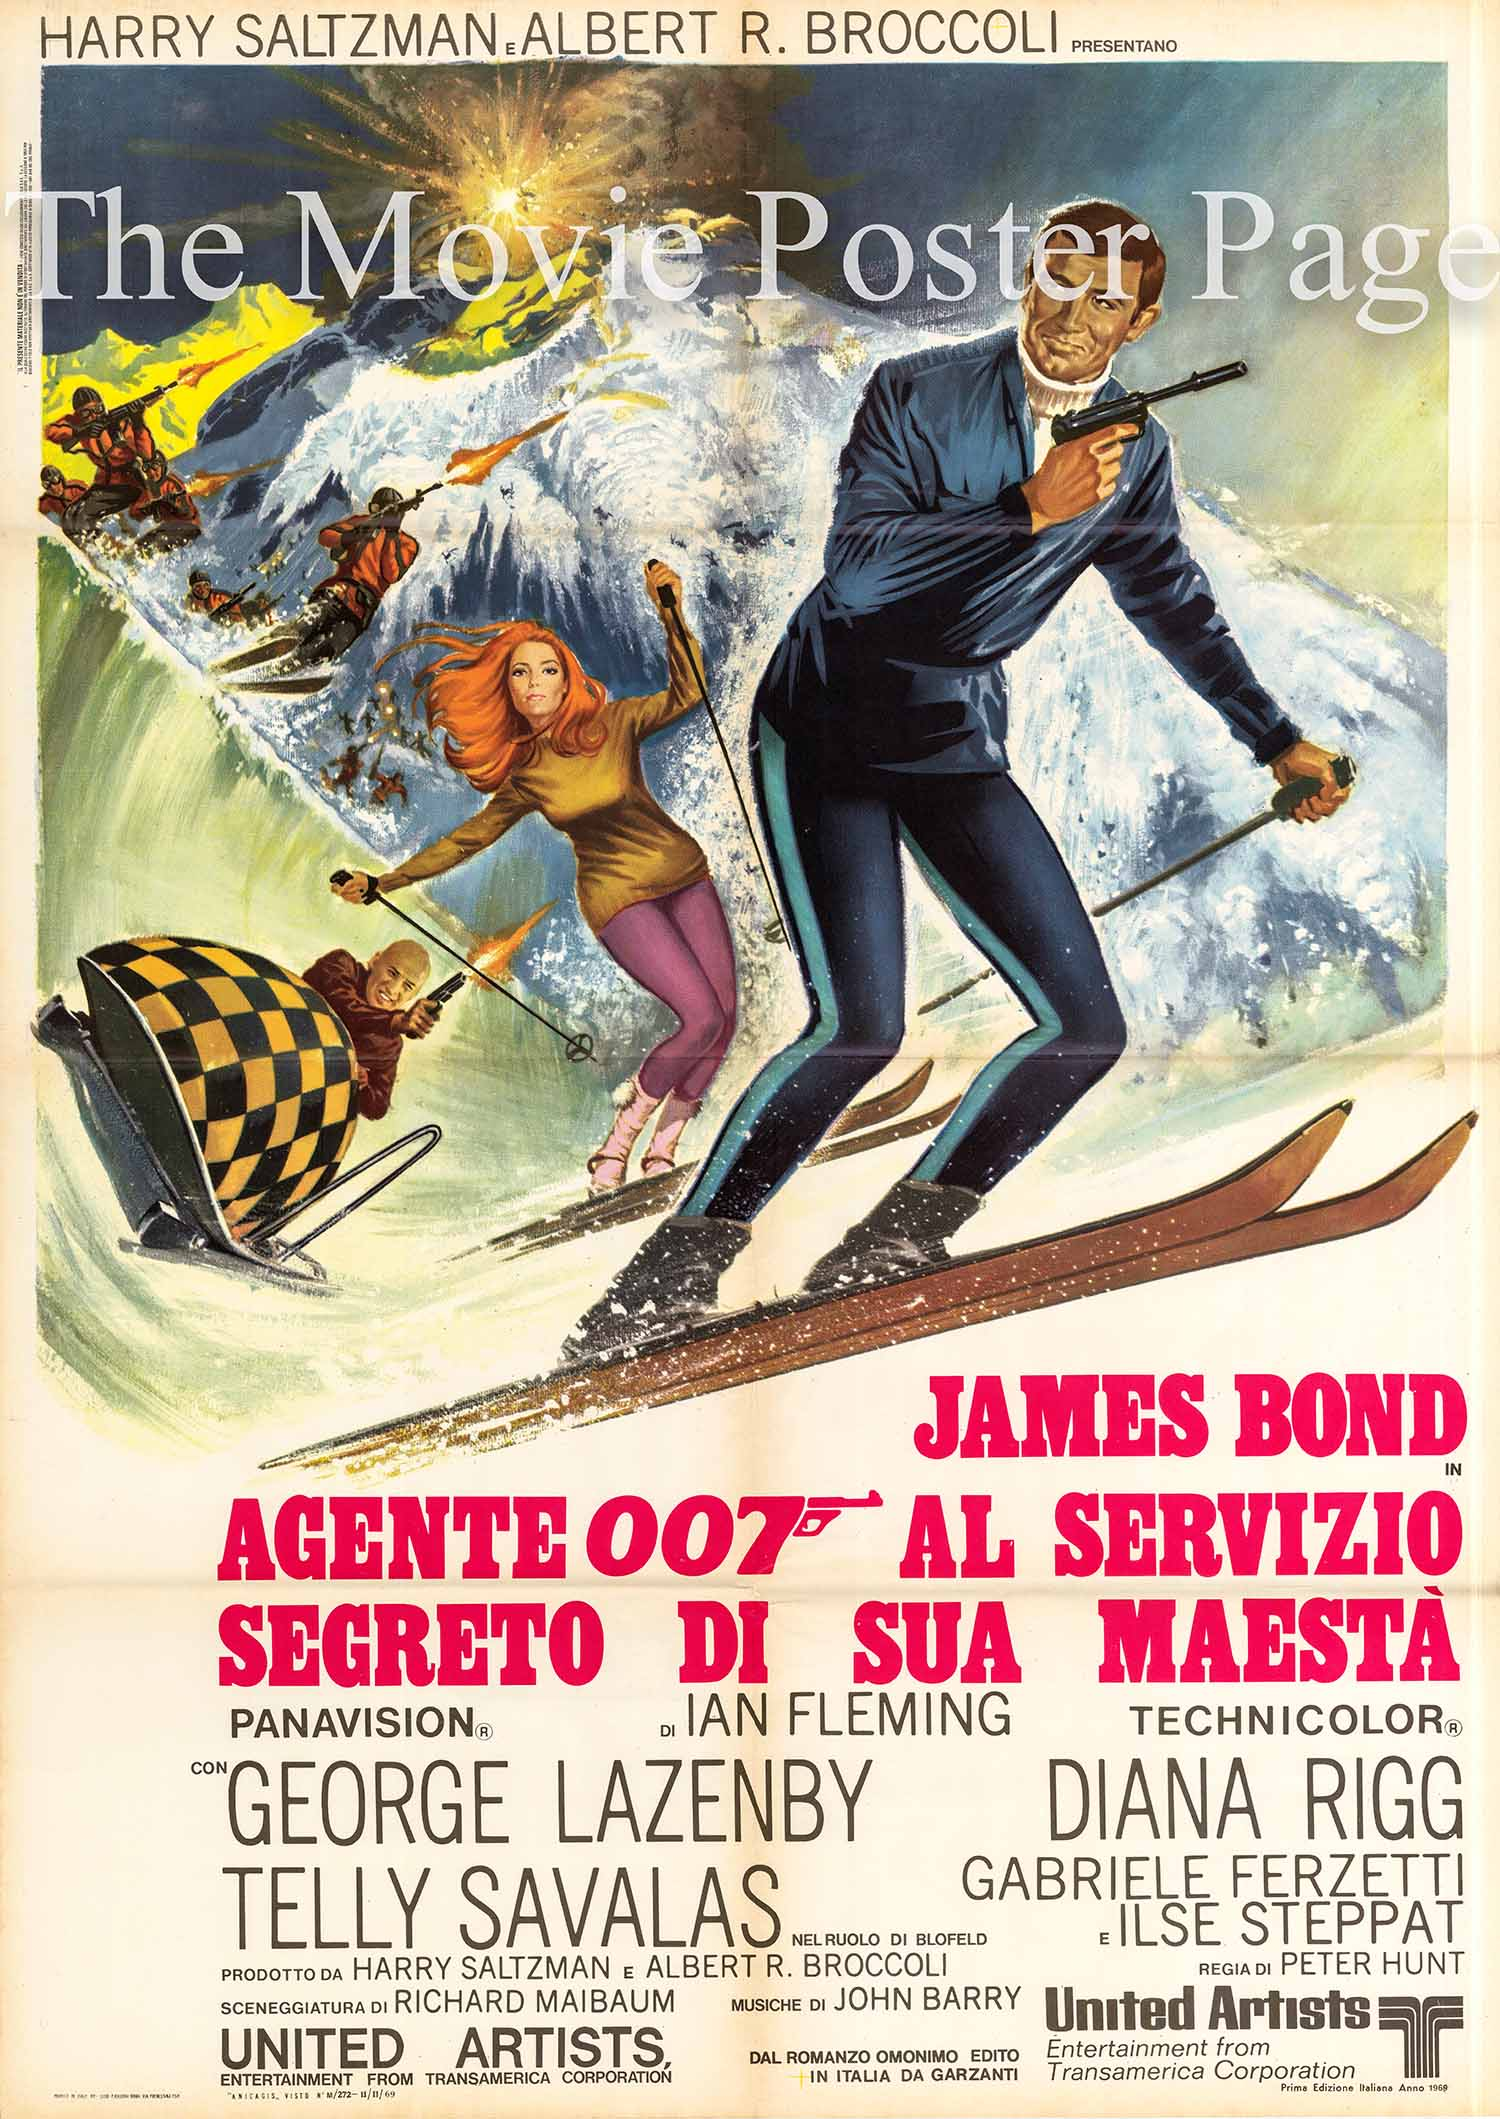 Pictured is the Italian two-sheet promotional poster for the 1969 Peter R. Hunt film On Her Majestys Secret Service, starring George Lazenby.